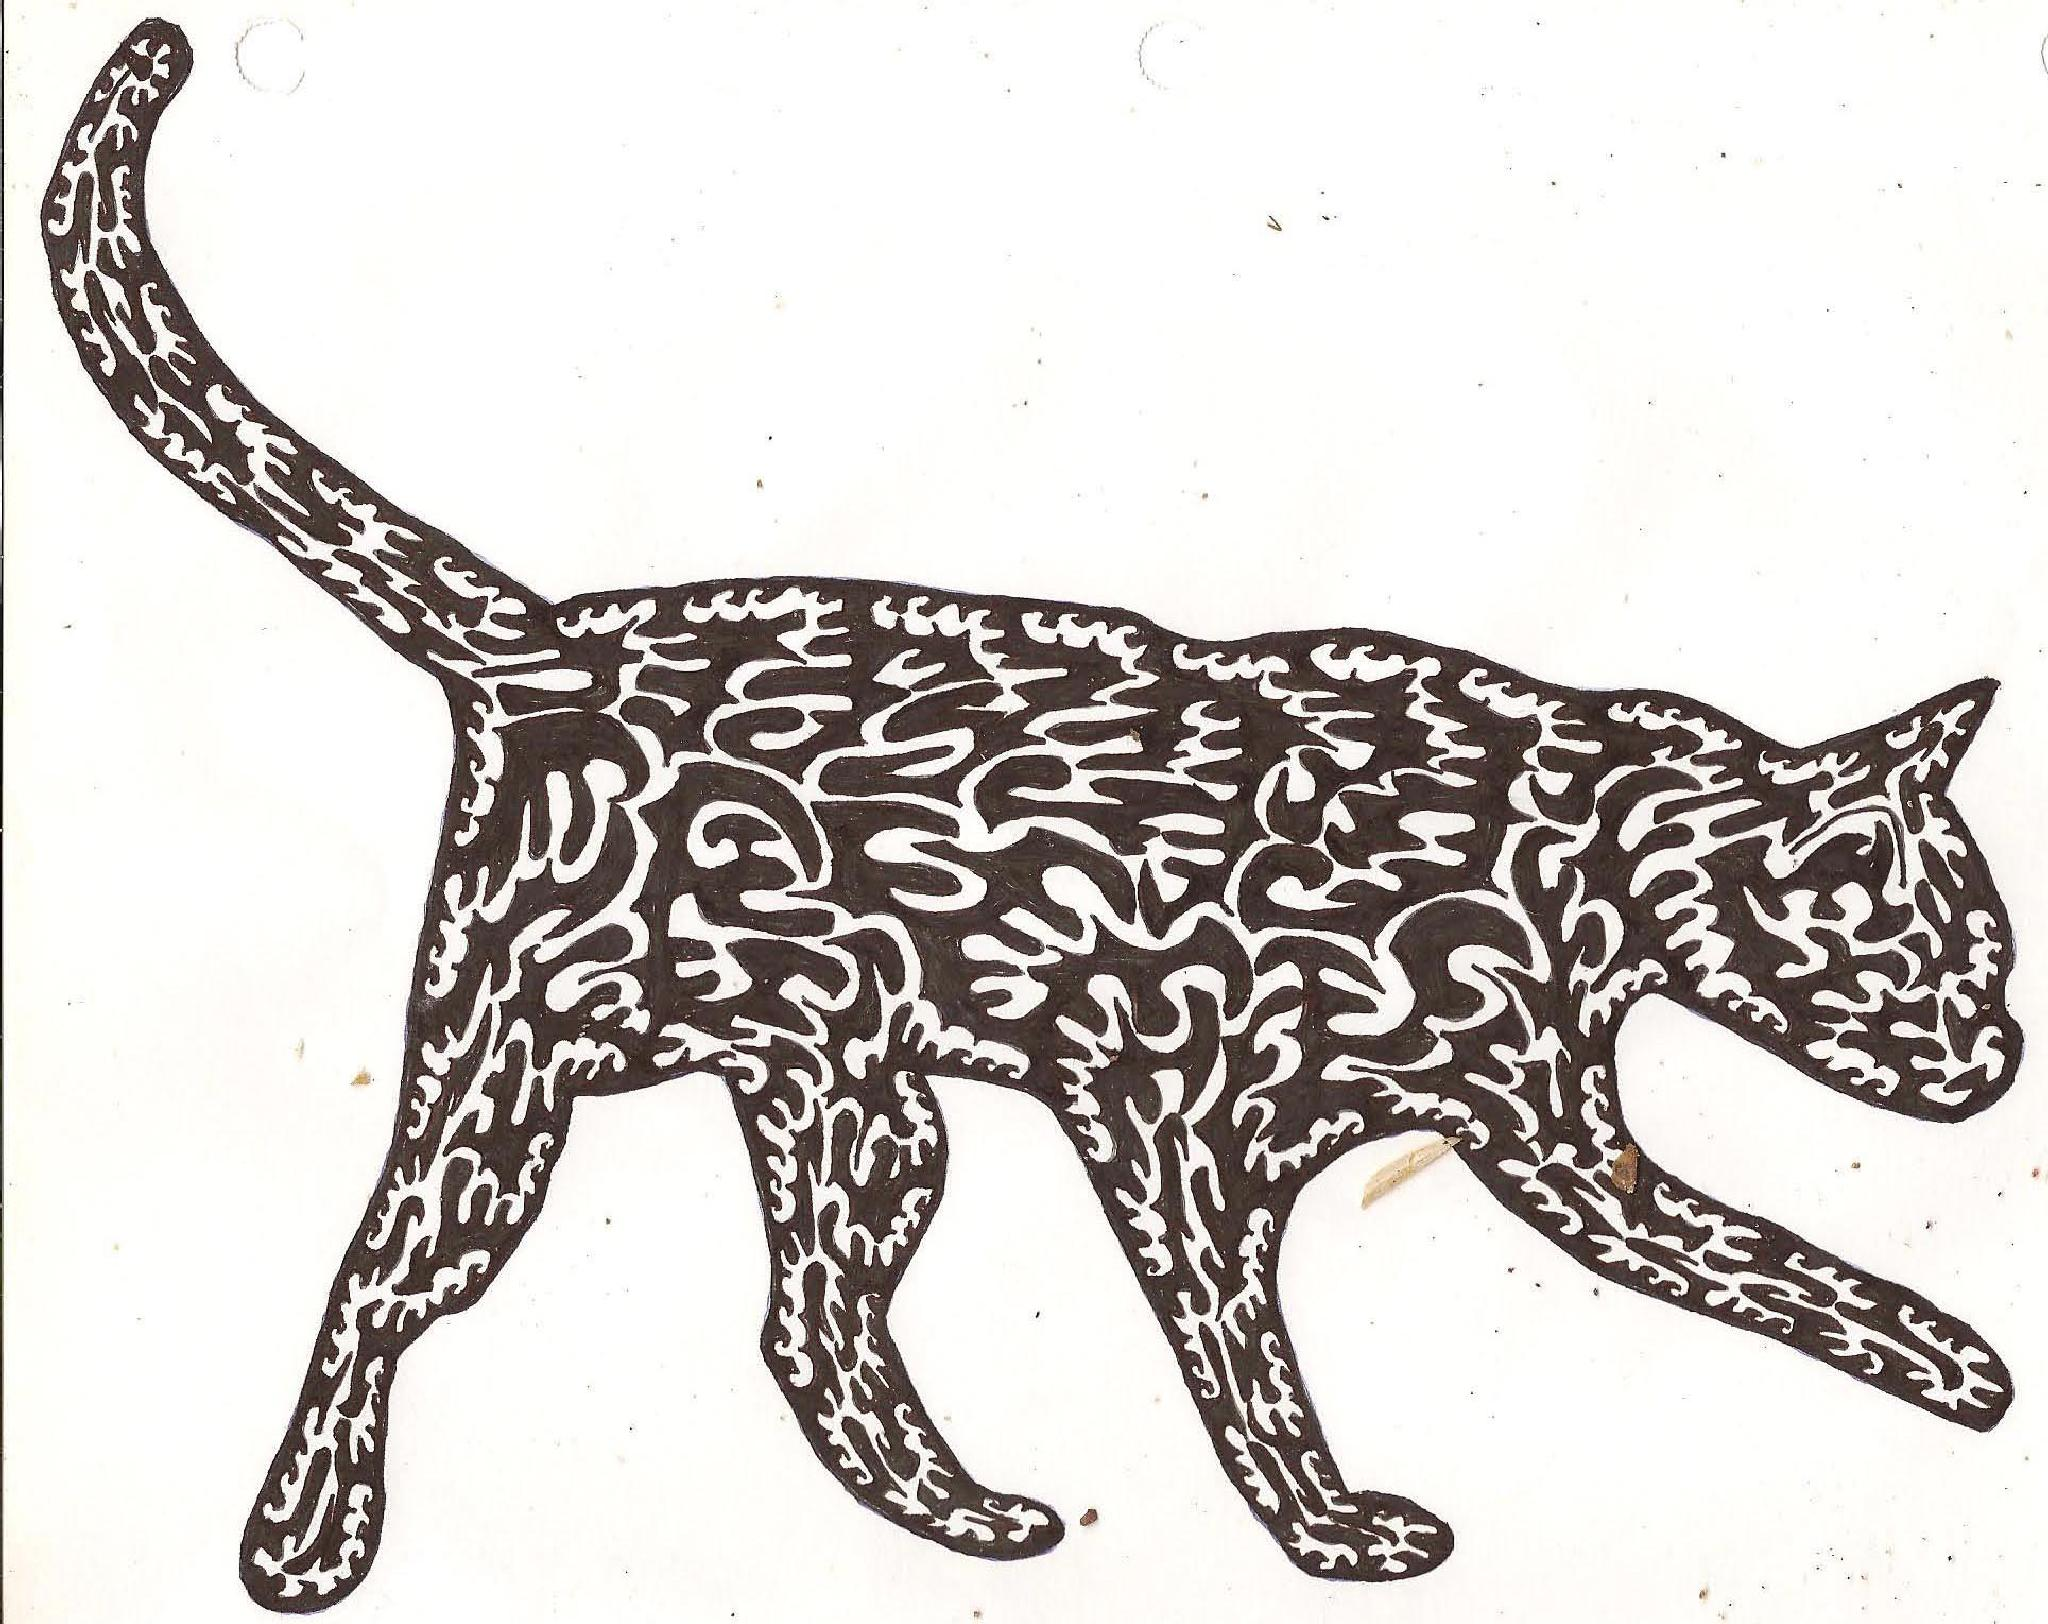 MY CAT DRAWING 1 by bechcomber444